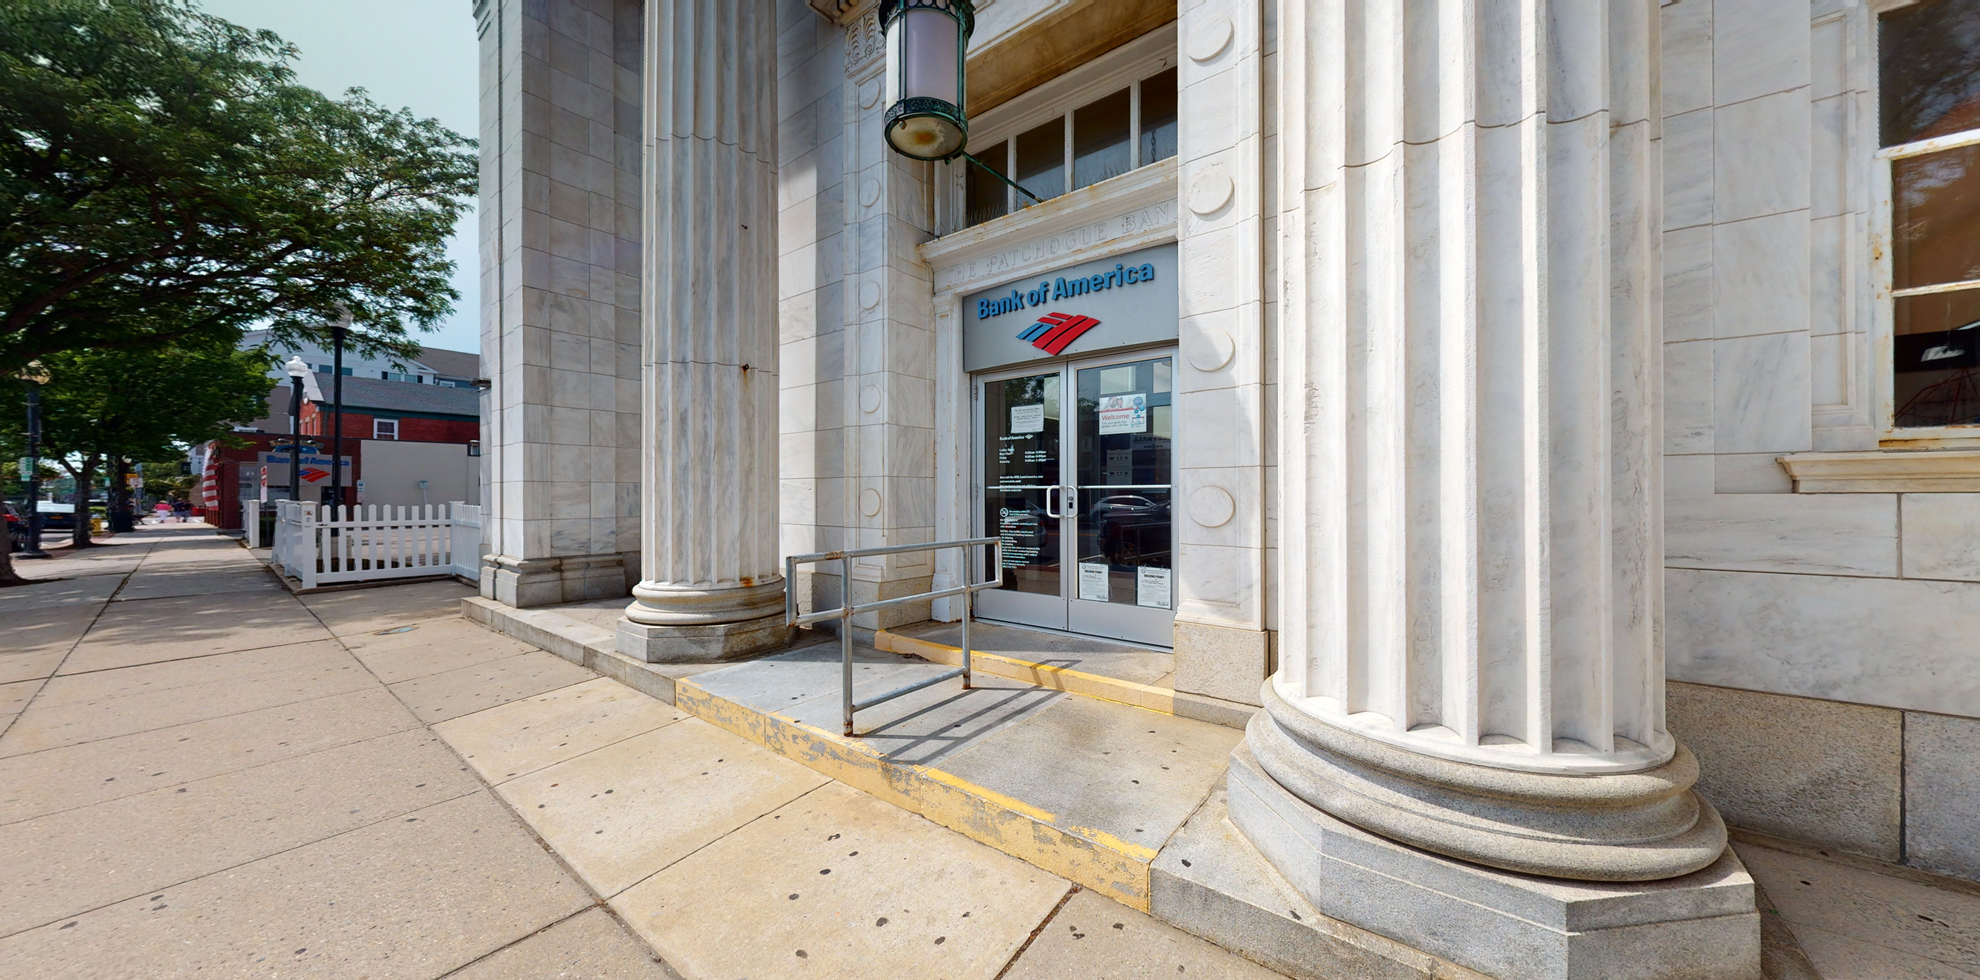 Bank of America financial center with drive-thru ATM   47 W Main St, Patchogue, NY 11772